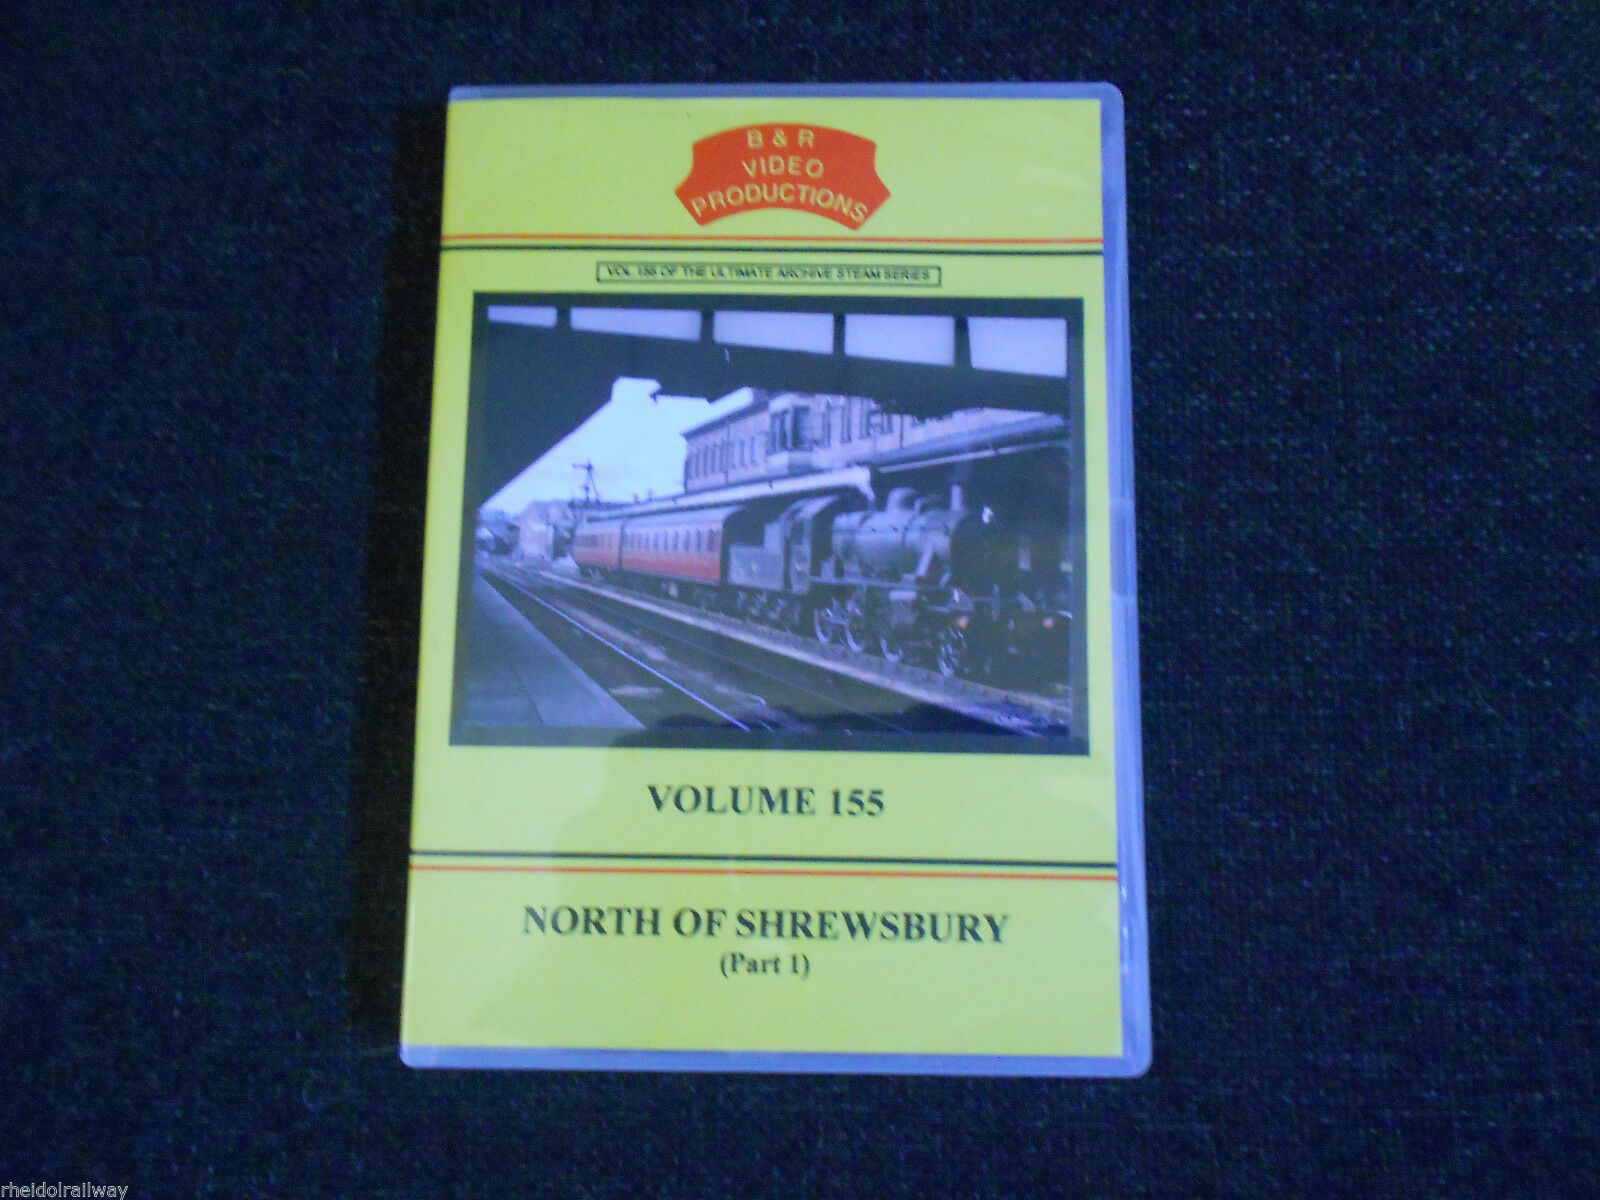 Shrewsbury, Chester, North Of Shrewsbury Part 1, B & R Volume 155 DVD